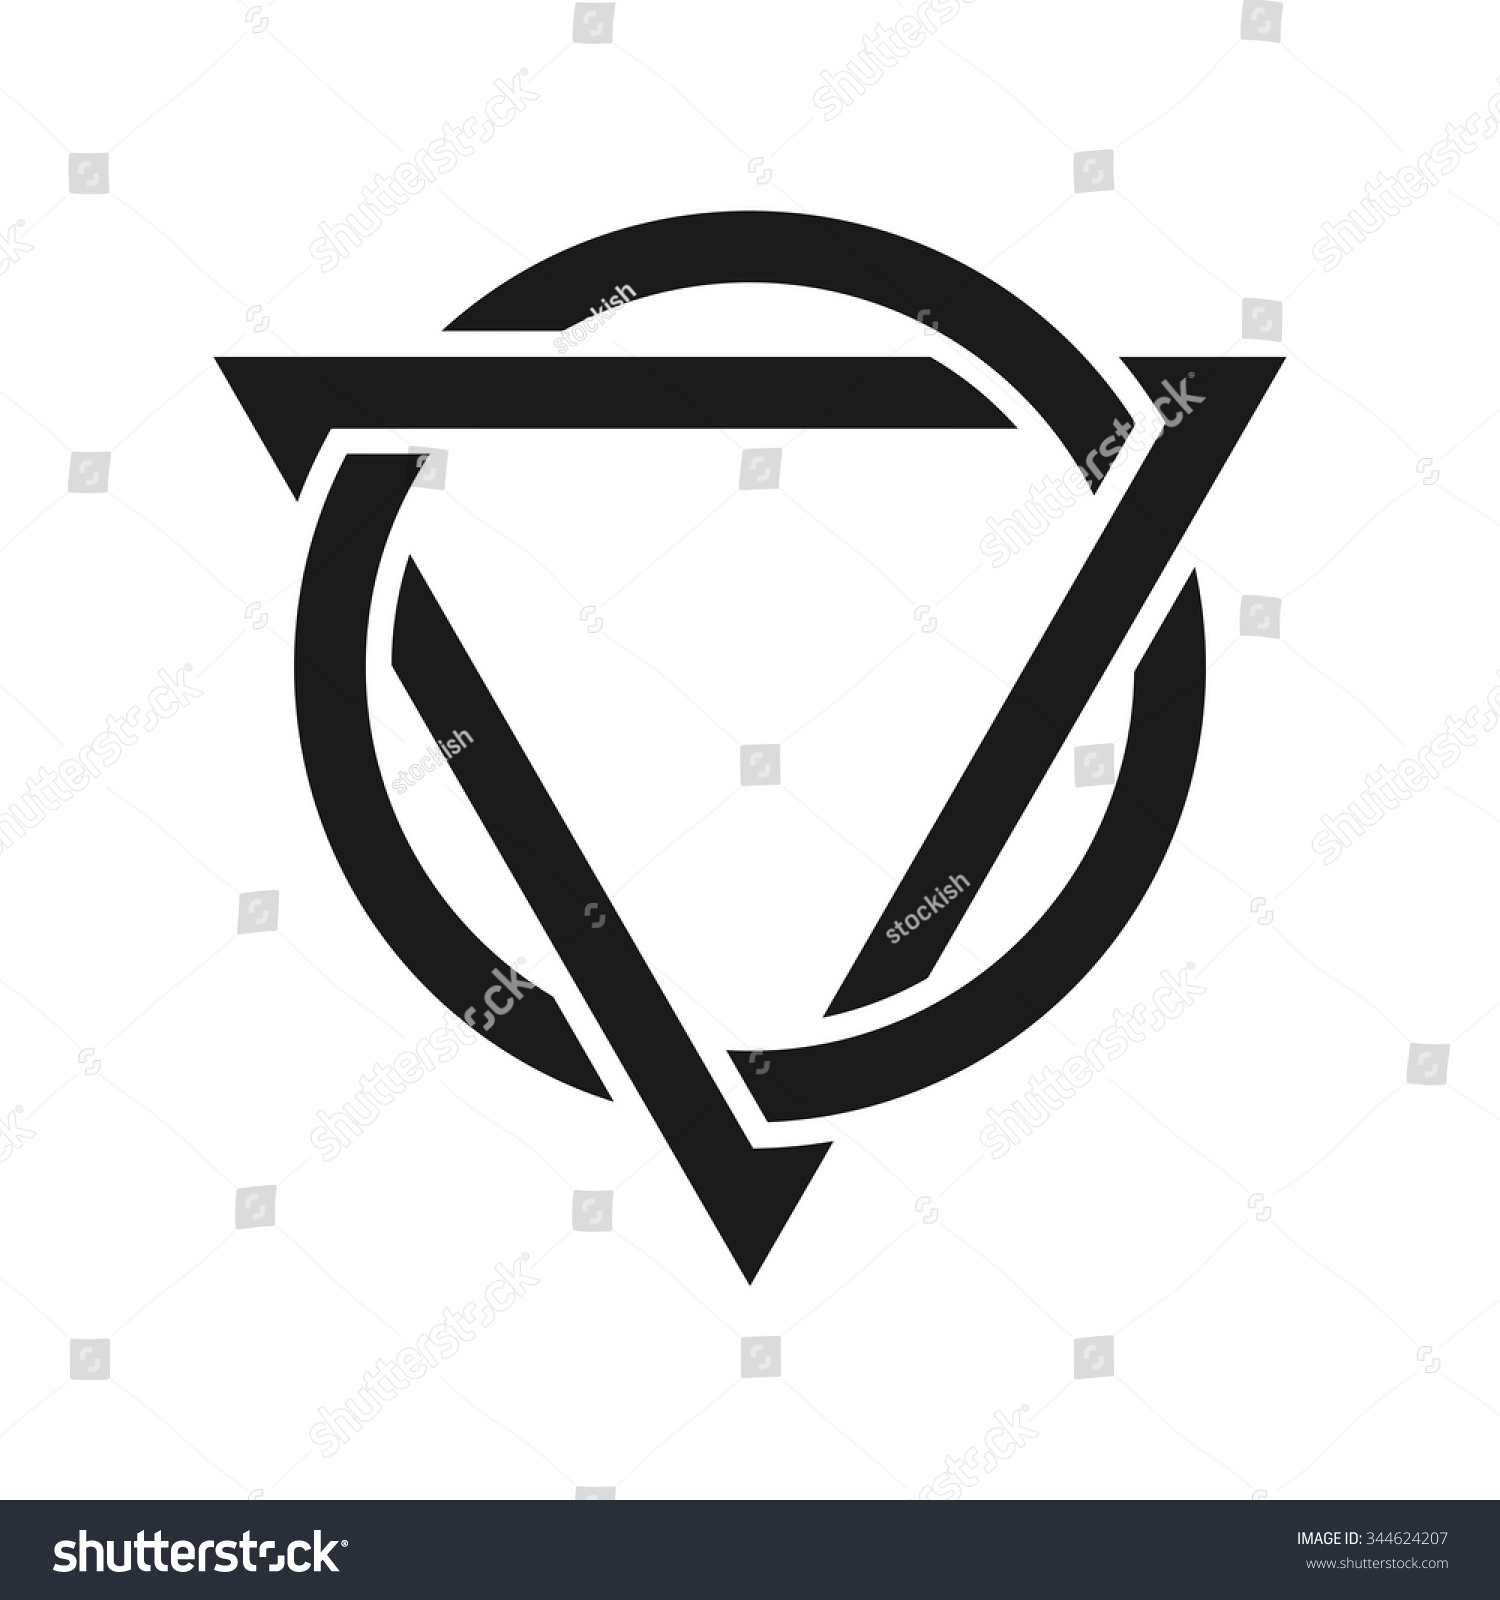 Triangle circle logo vector stock vector 344624207 shutterstock triangle and circle logo vector biocorpaavc Images